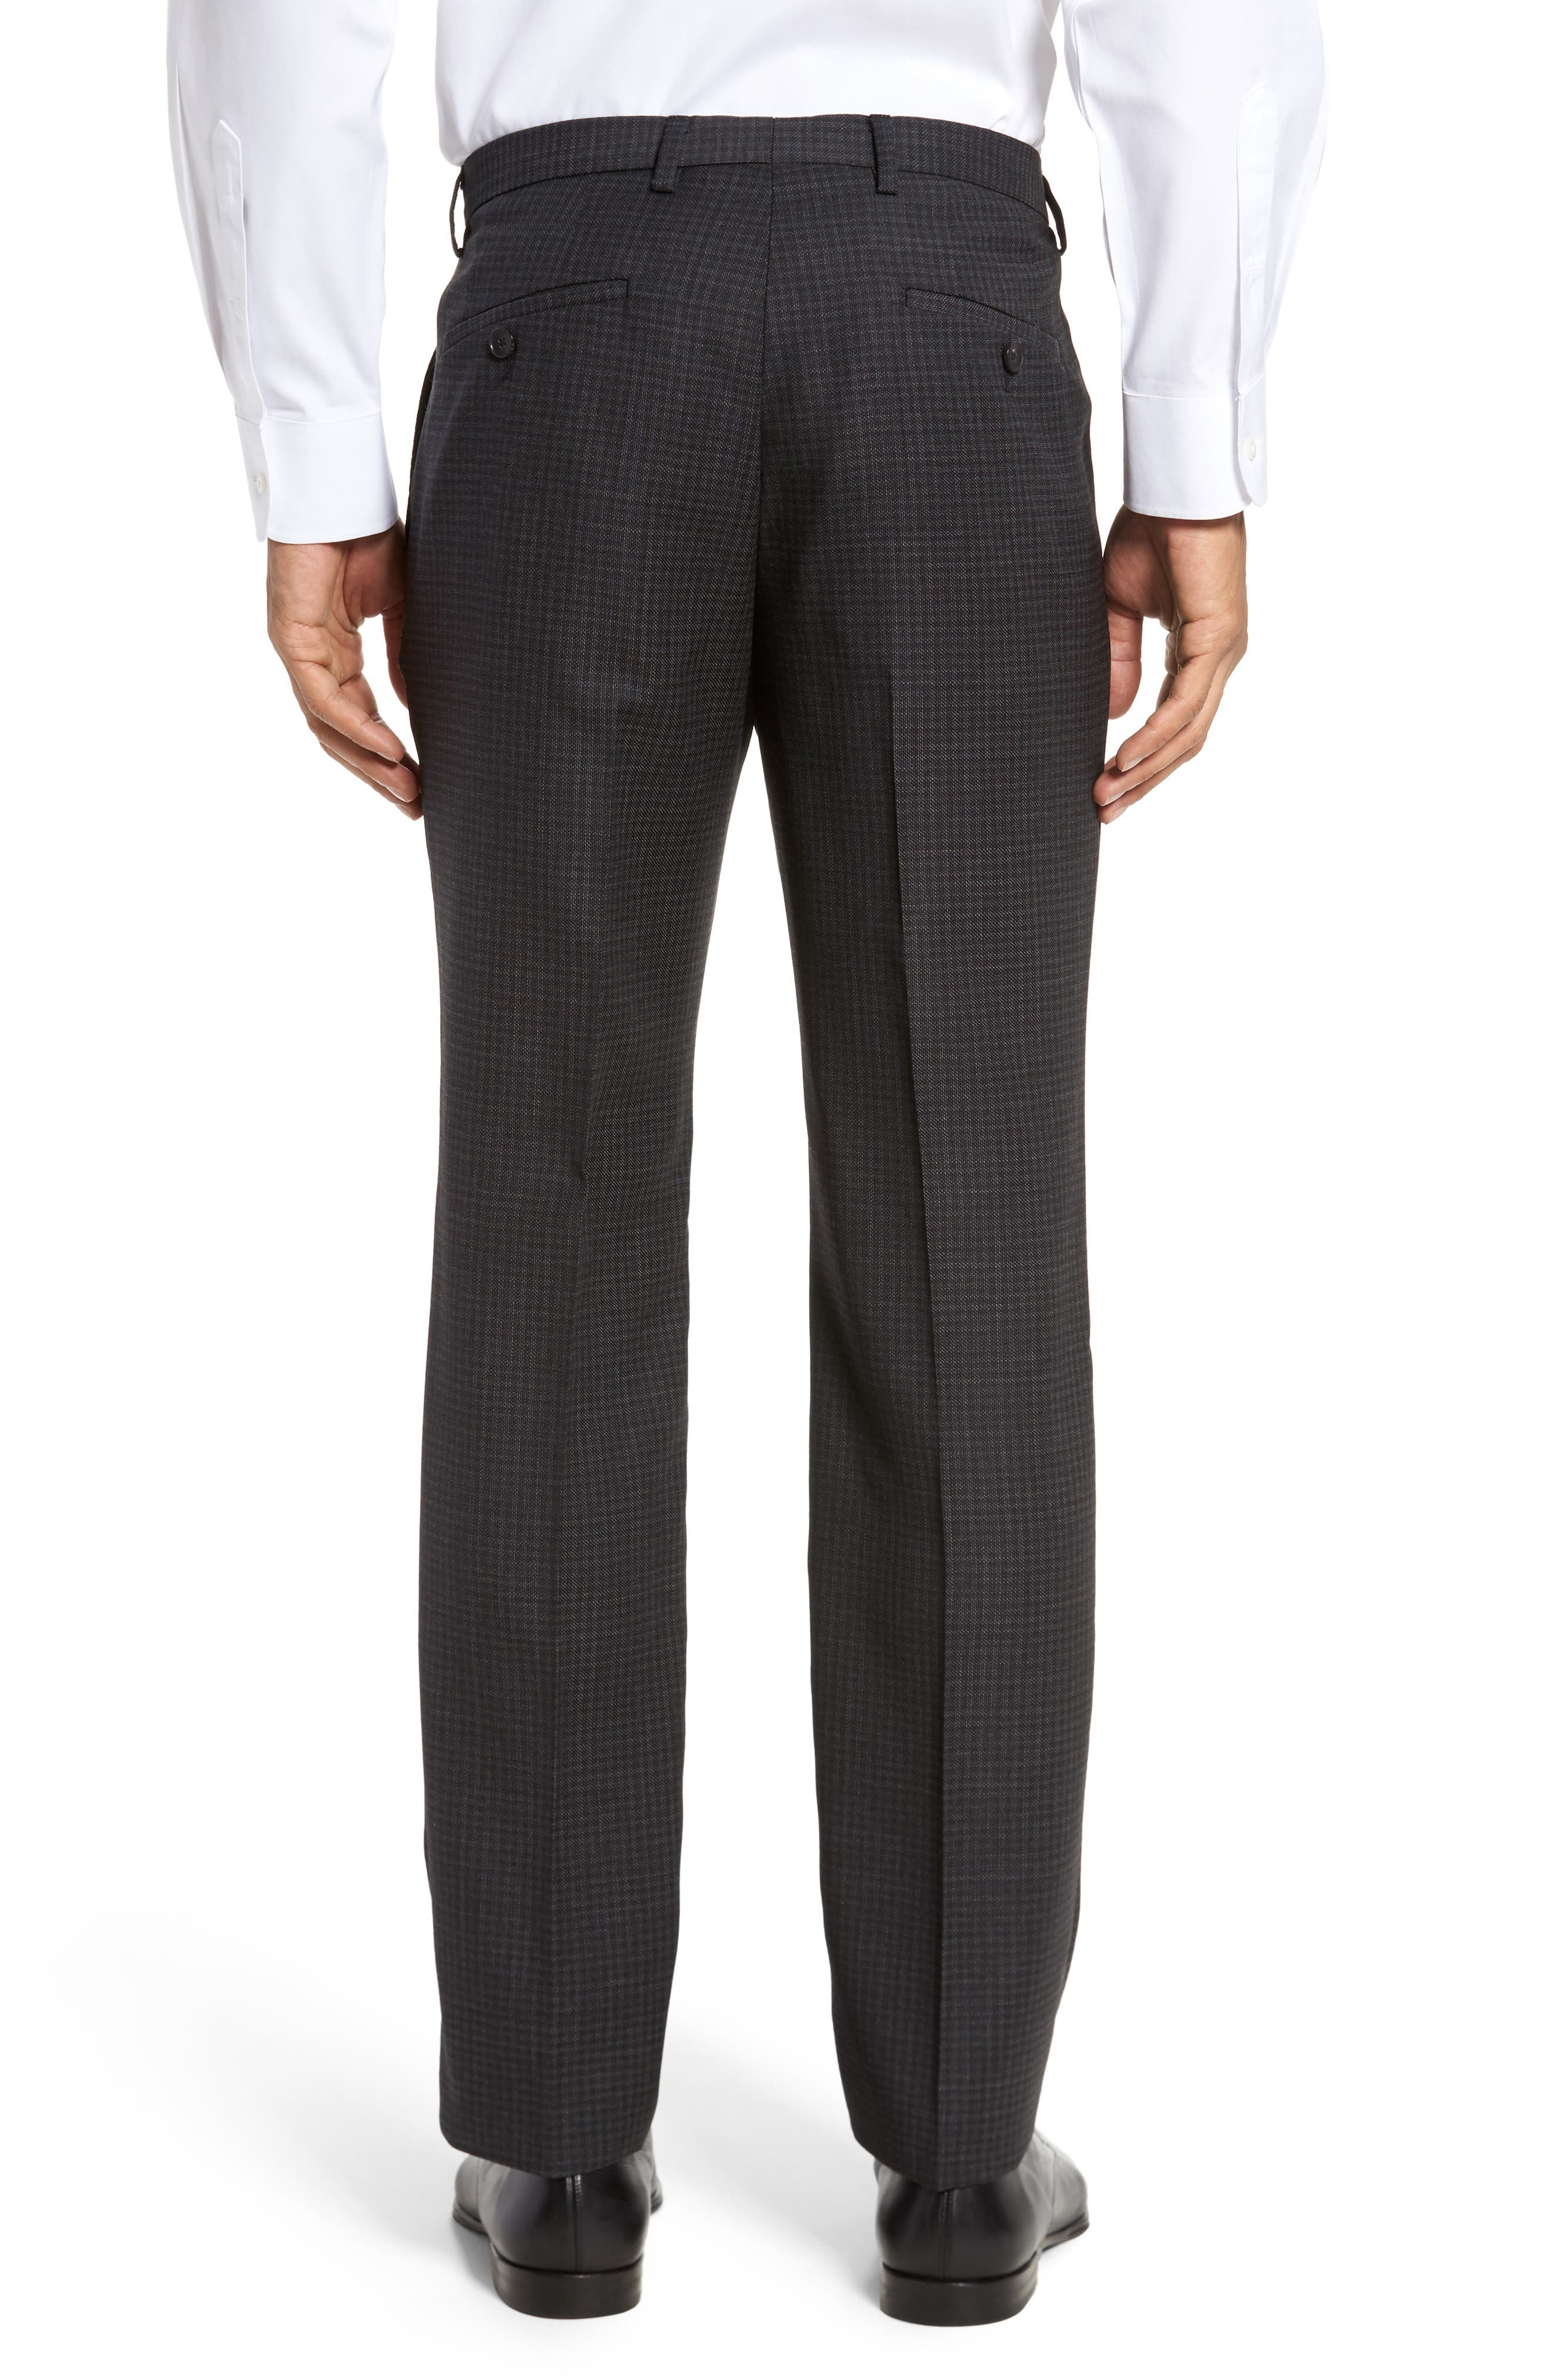 Leenon Flat Front Regular Fit Check Wool Trousers,                             Alternate thumbnail 3, color,                             001